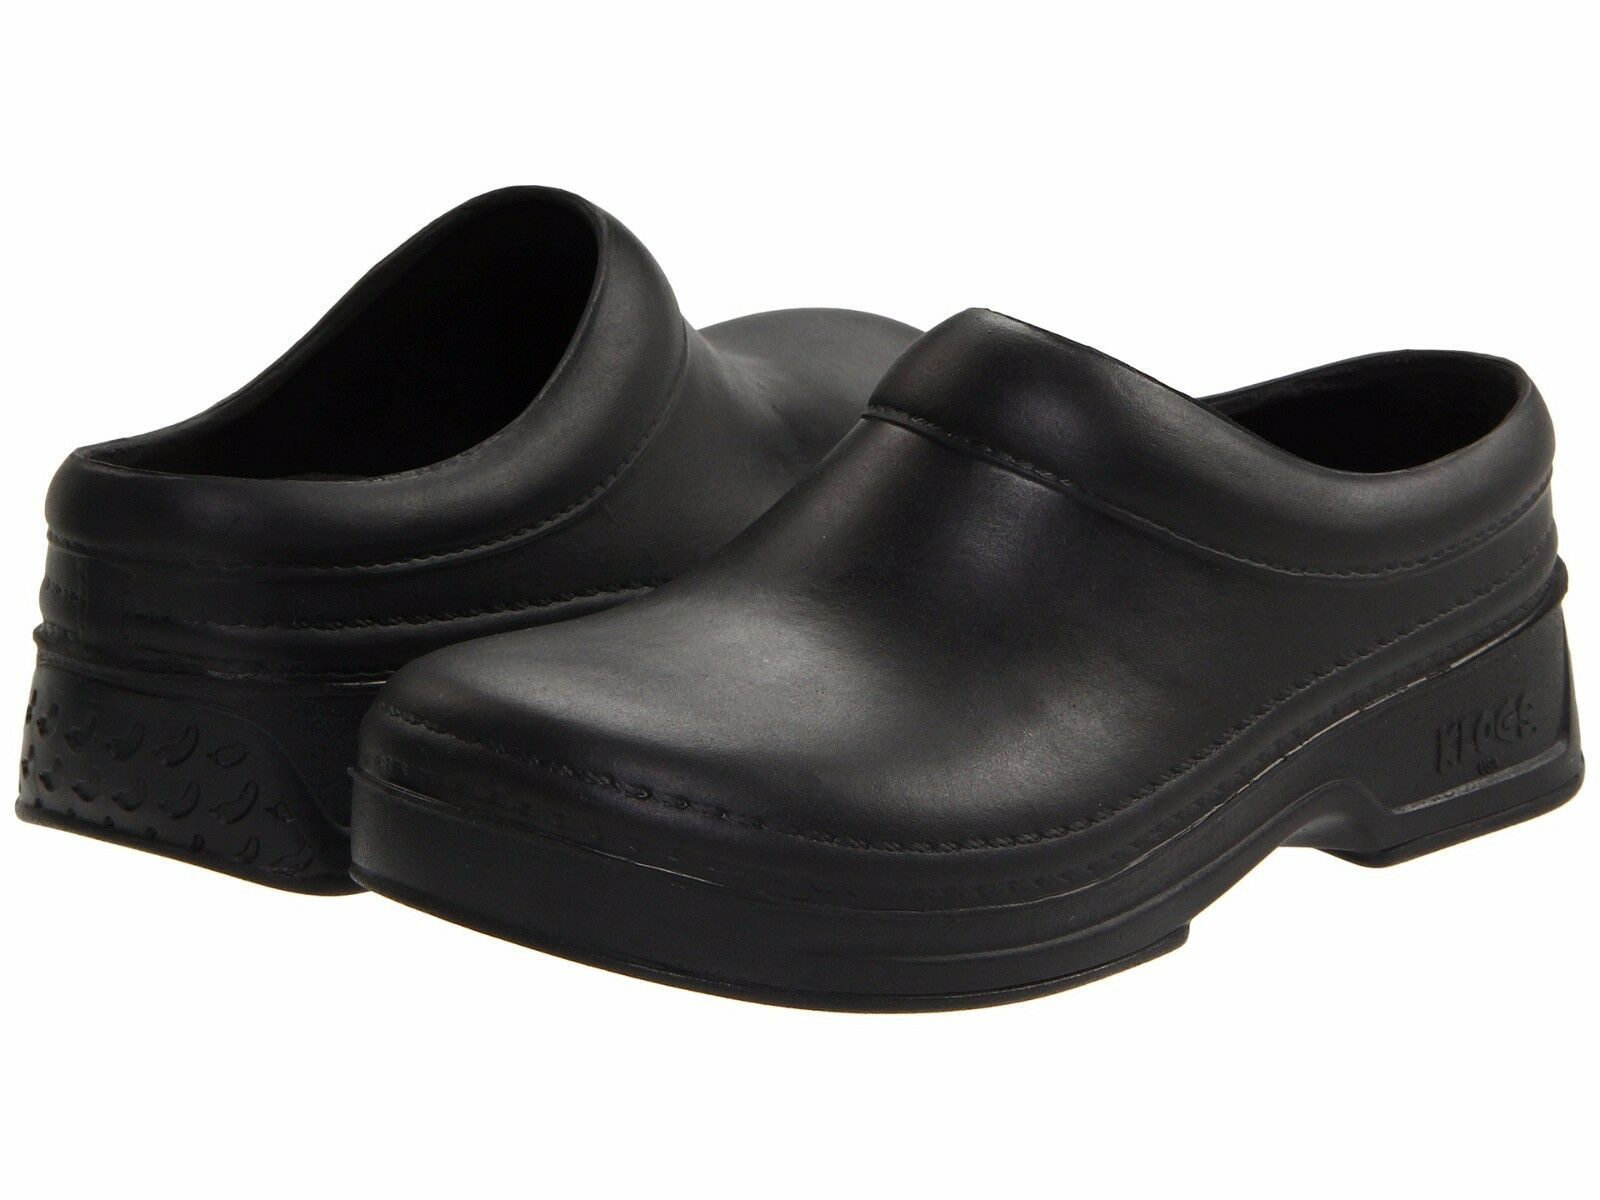 Klogs NON-SLIP Clogs shoes Resistant Non Marking for Kitchen Bathroom